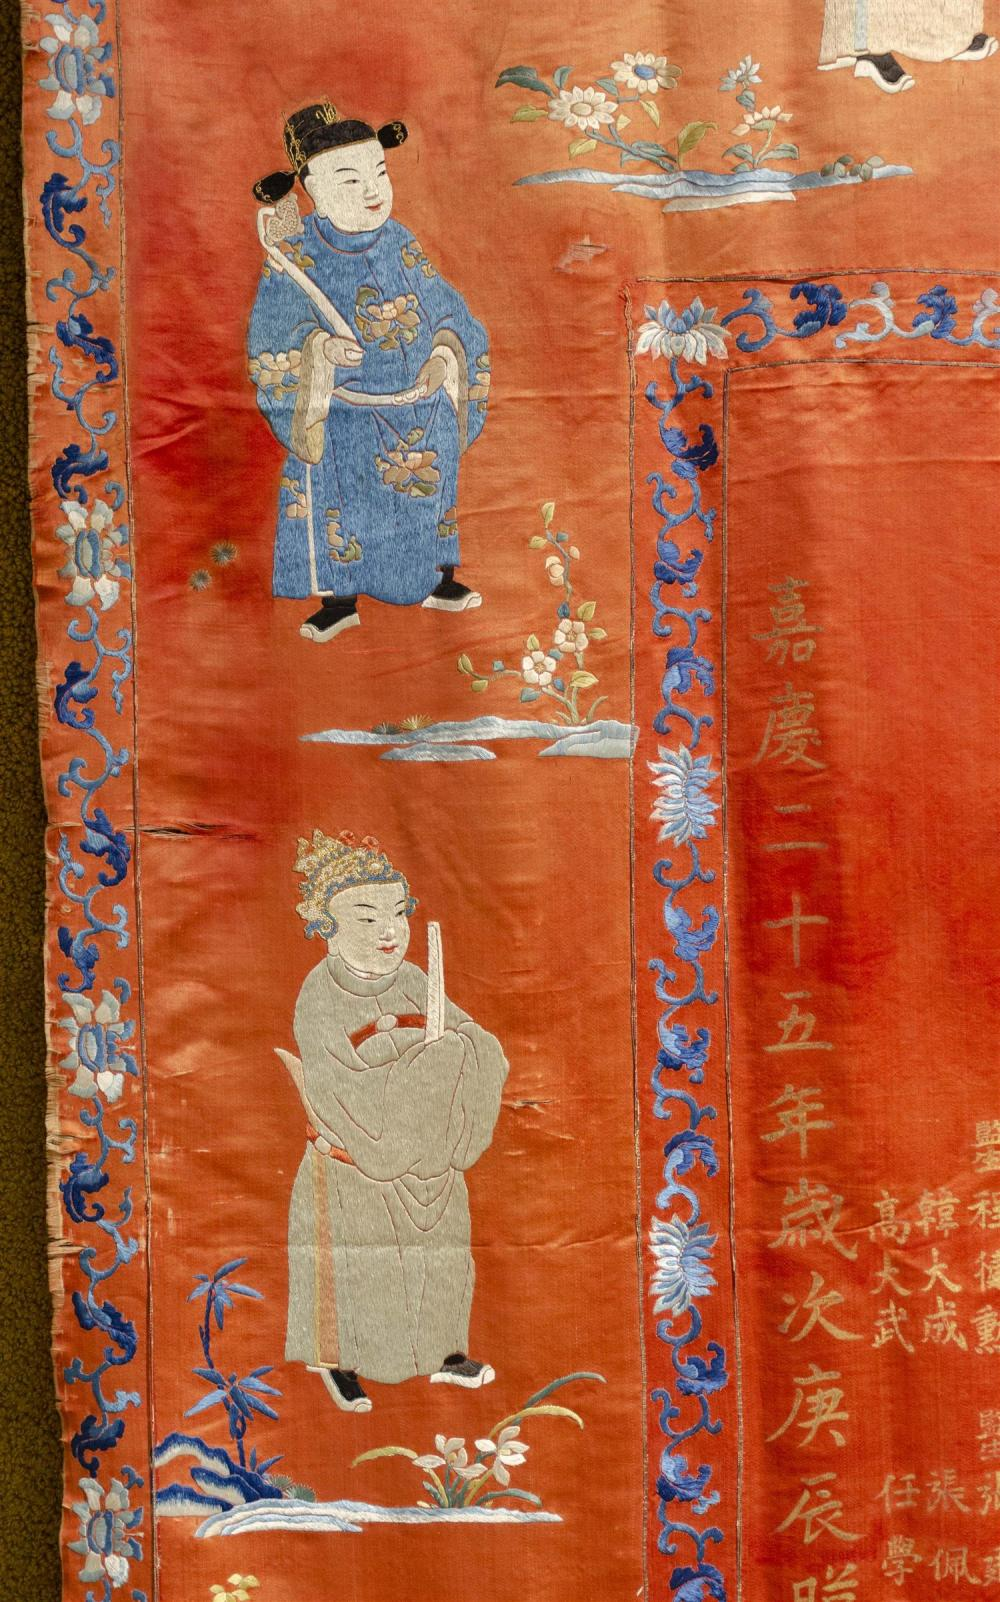 Lot 1130: CHINESE SILK NEEDLEWORK TAPESTRY Upper portion depicting a noble family seated in a pavilion with a crane and a deer in attendance....